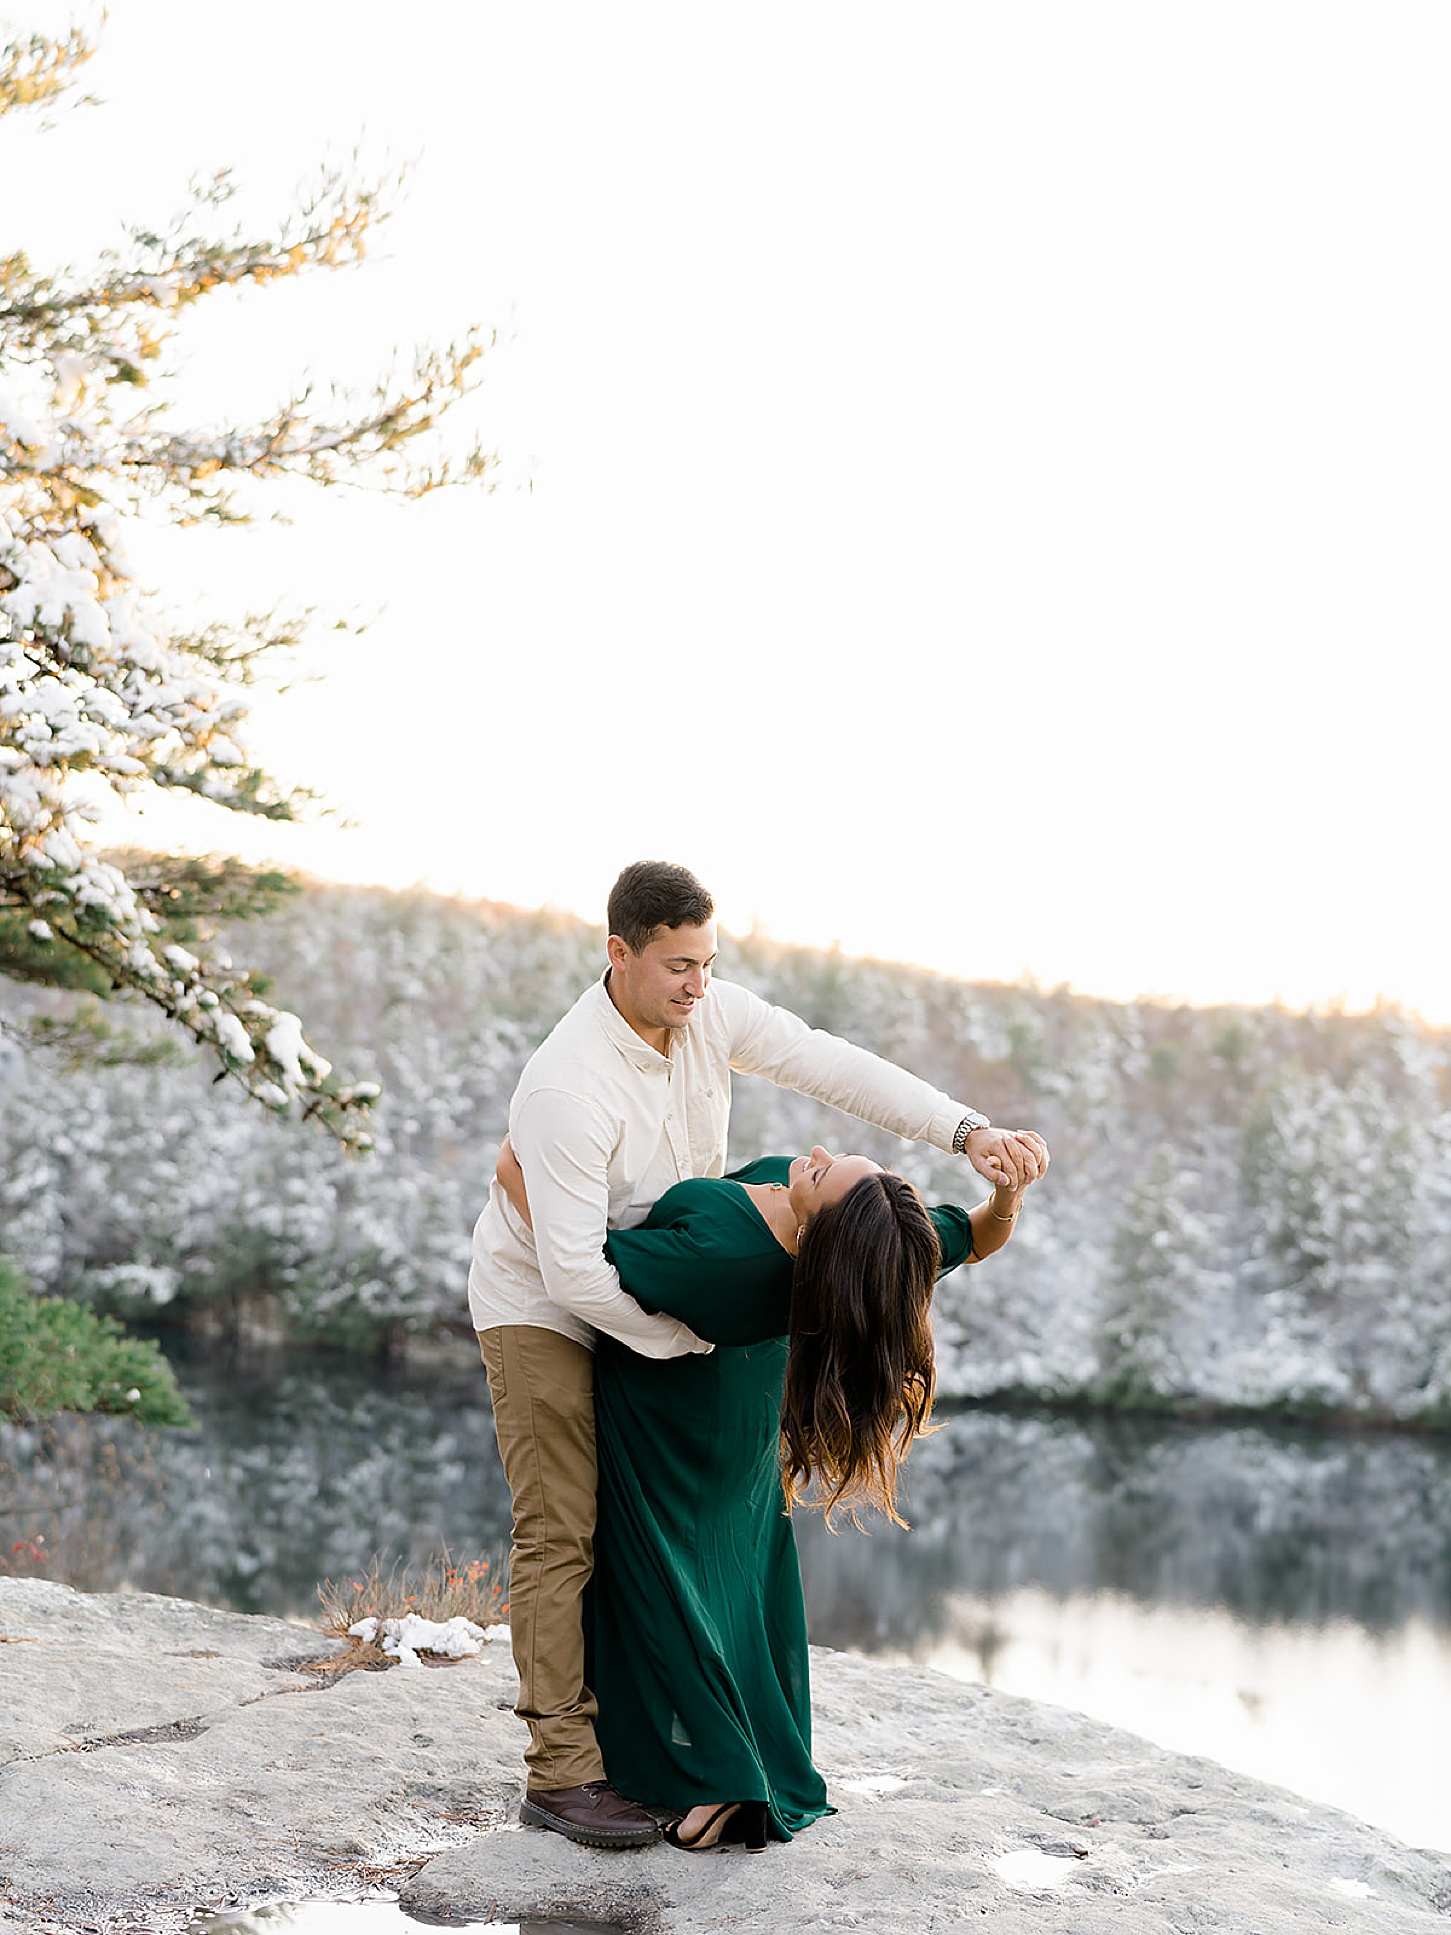 Vermont Destination Engagement Photography by Magdalena Studios 0009